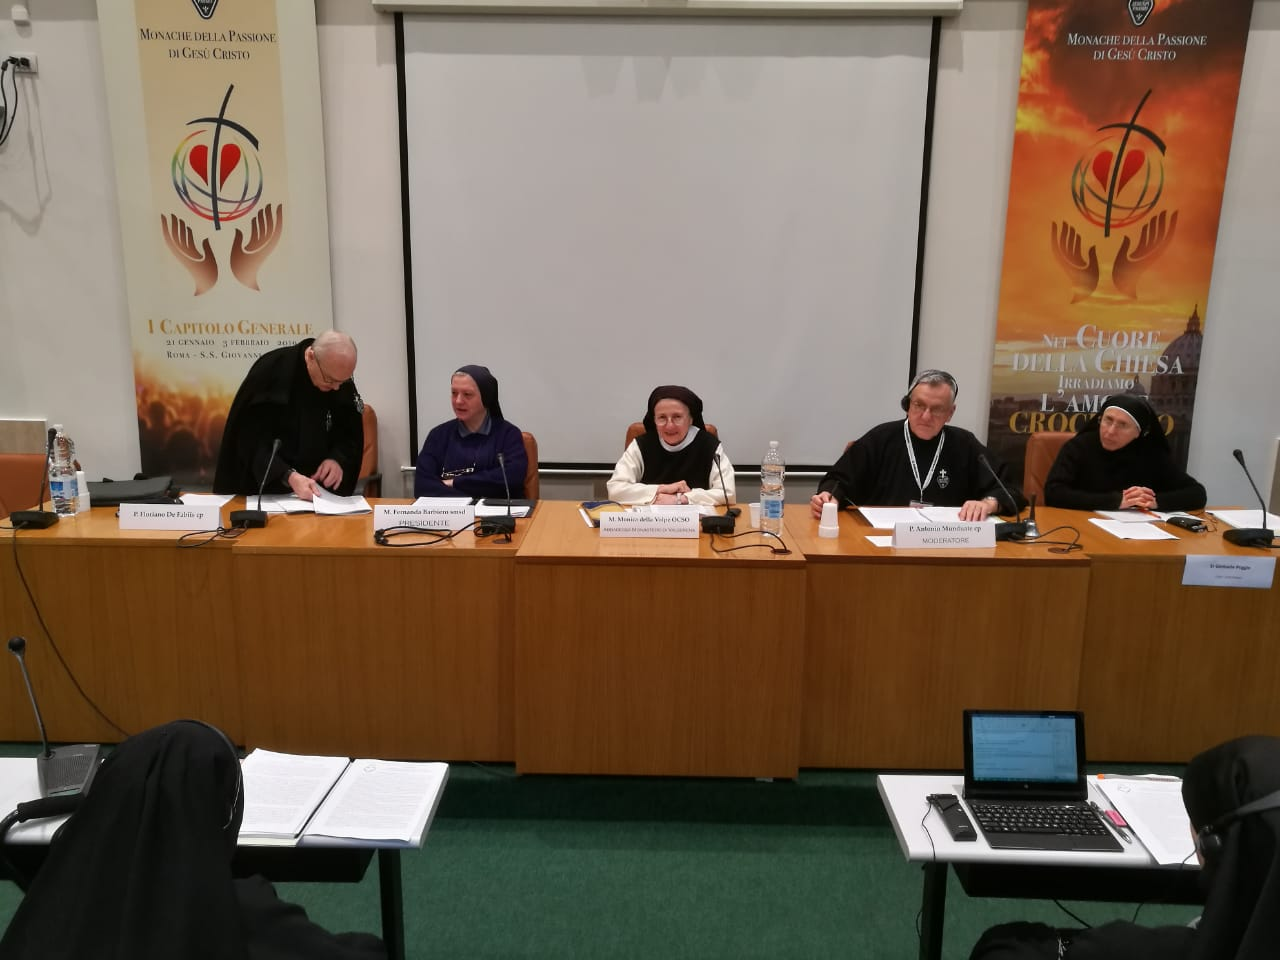 P. Floriano di Fabiis, CP; M. Fernanda Barbiero, smsd and General Delegate of the Holy See; Mother Monica della Volpe, OCSO gave conferences during the retreat days that began the general chapter; Fr. Antonio Munduate, CP; & M. Gertrude Poggio, CP, secretary at the General Chapter